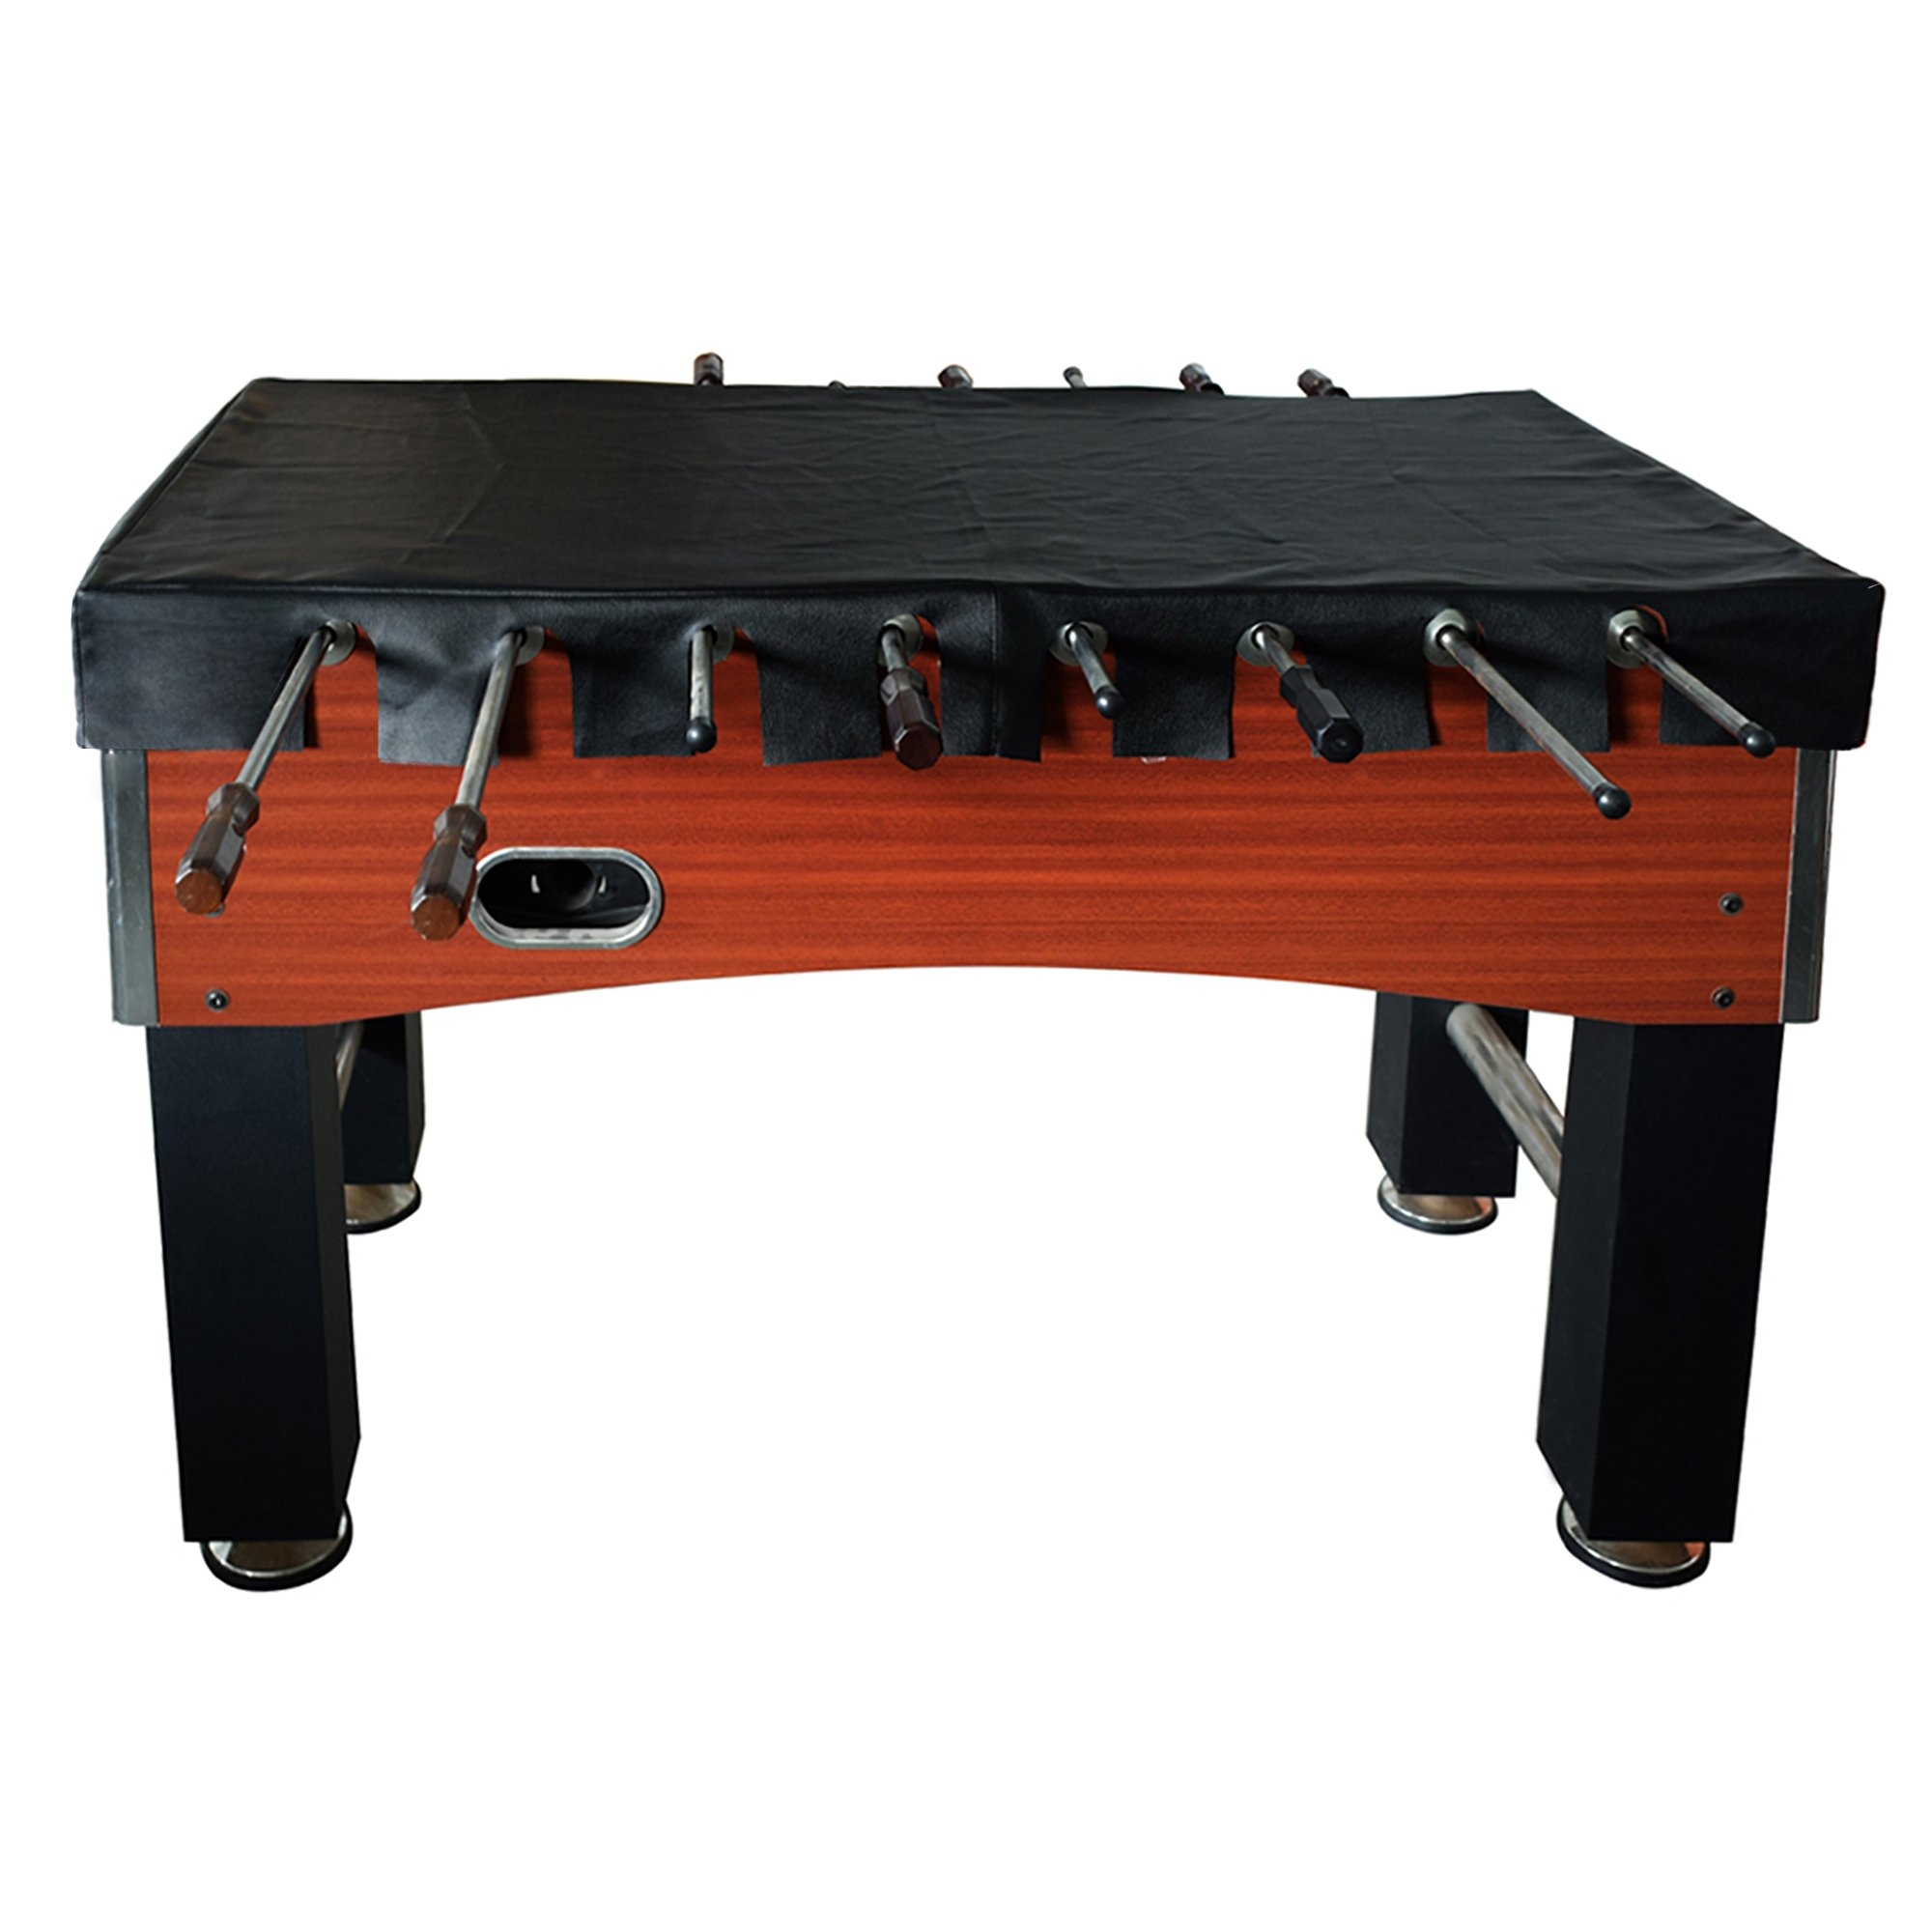 Hathaway Foosball 56'' Table Cover by Hathaway